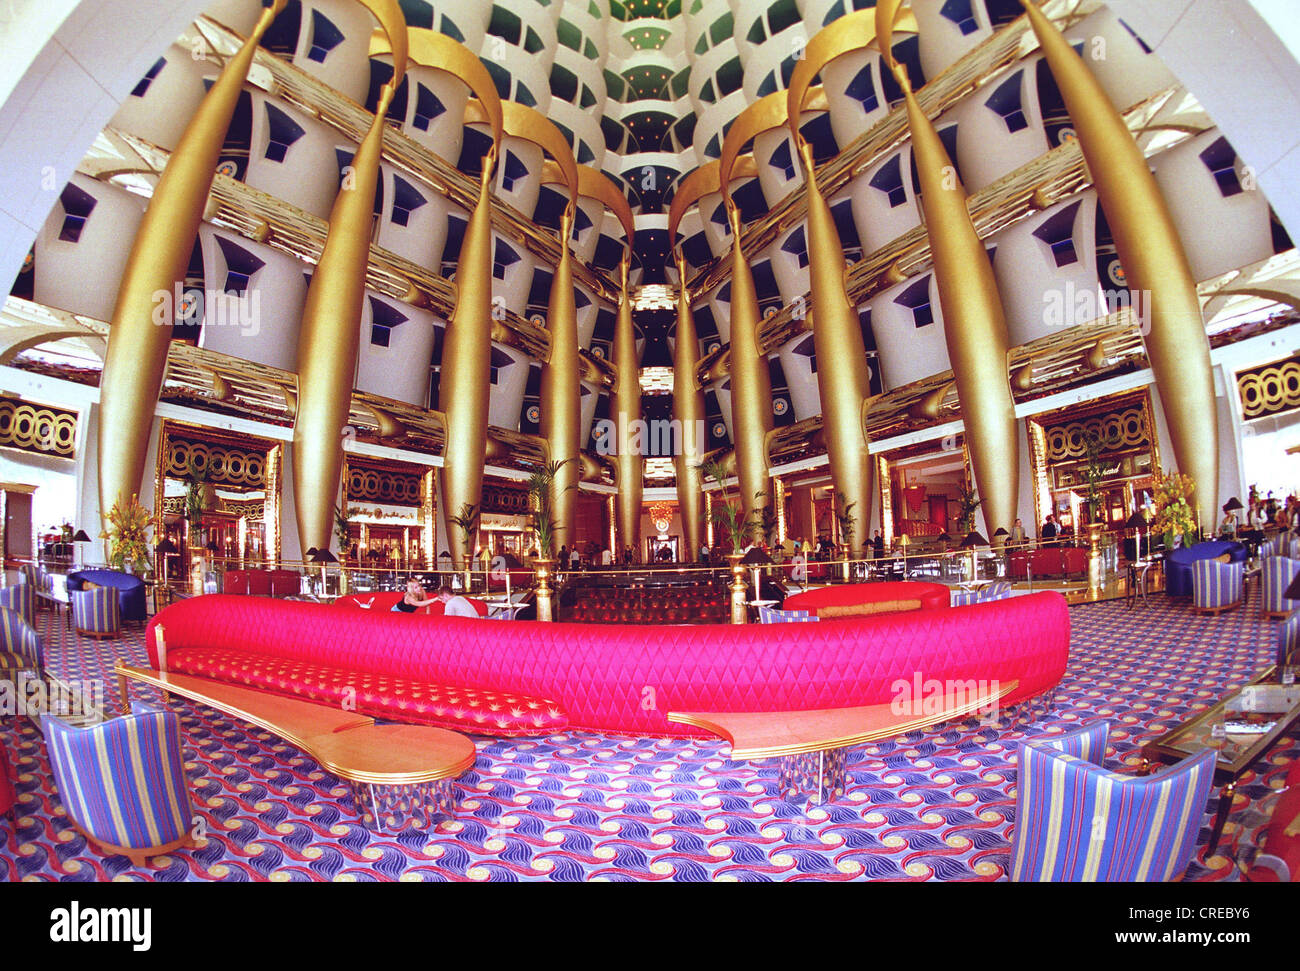 Burj al arab the most expensive hotel in the world dubai for Luxurious hotels in the world